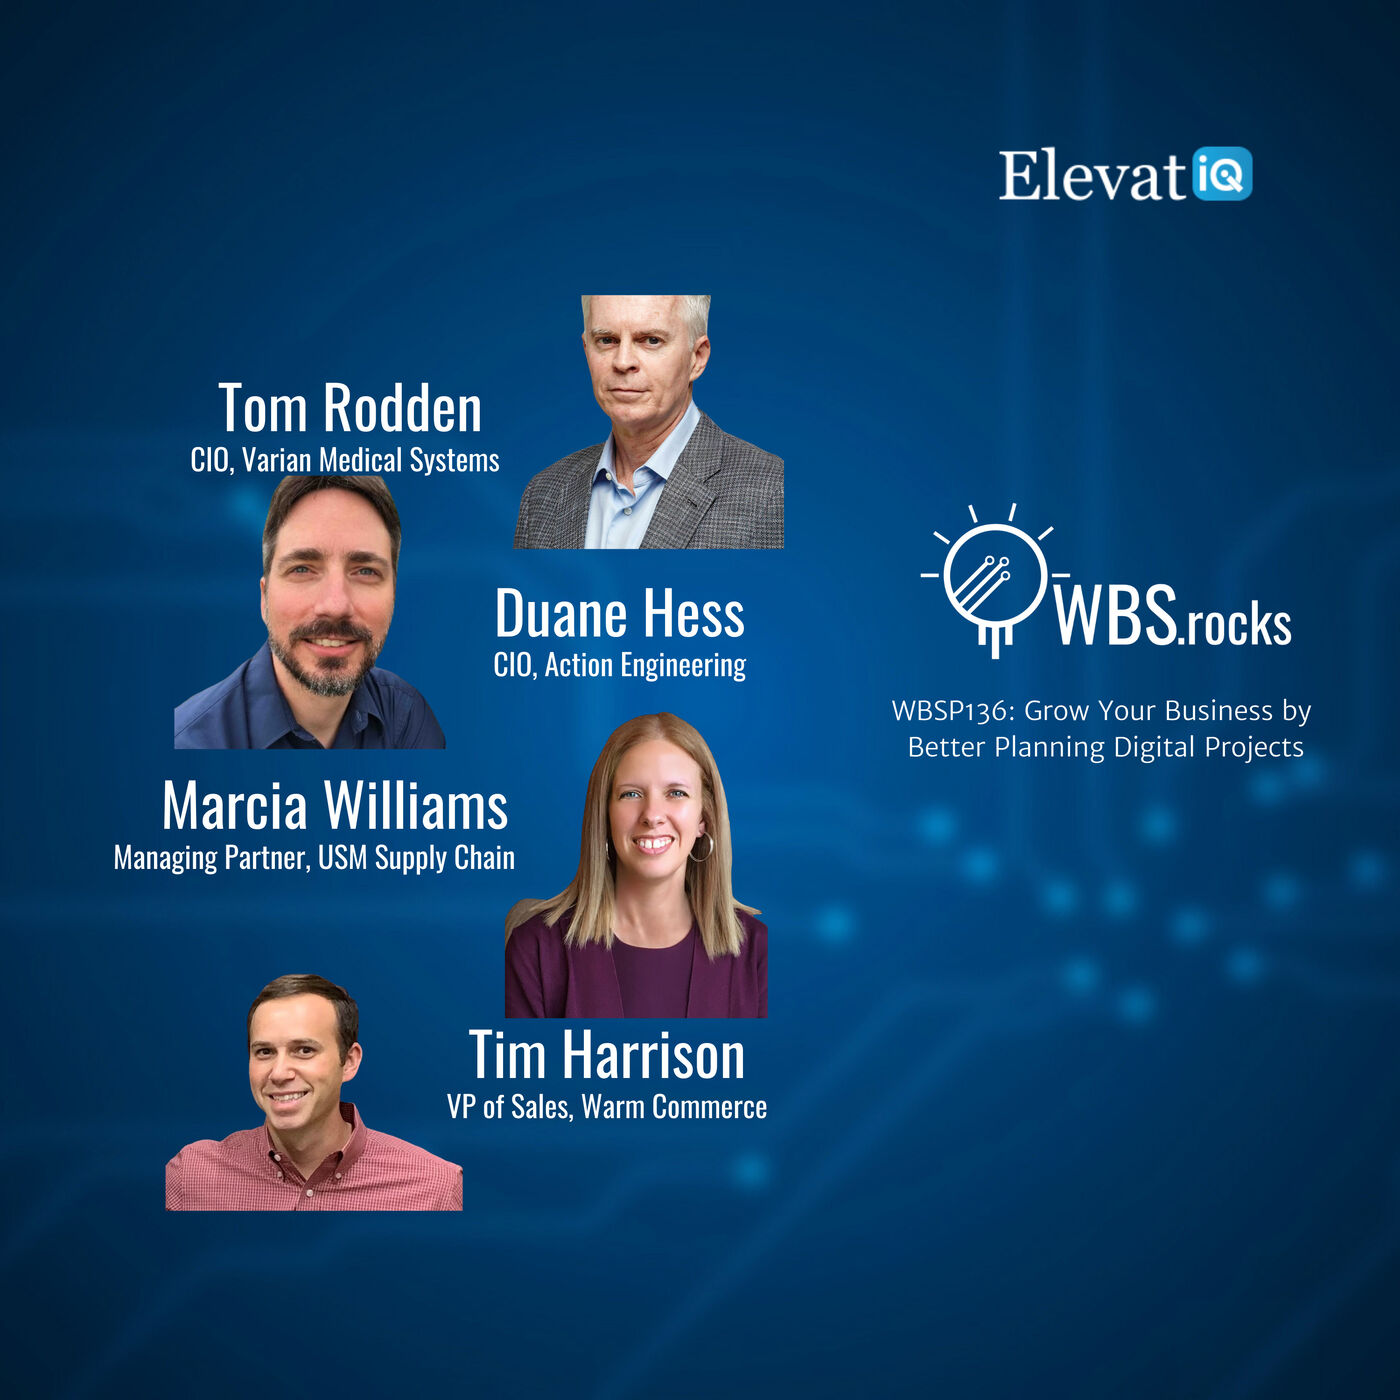 WBSP136: Grow Your Business by Better Planning Digital Projects, a Live Interview w/ a Panel of Experts